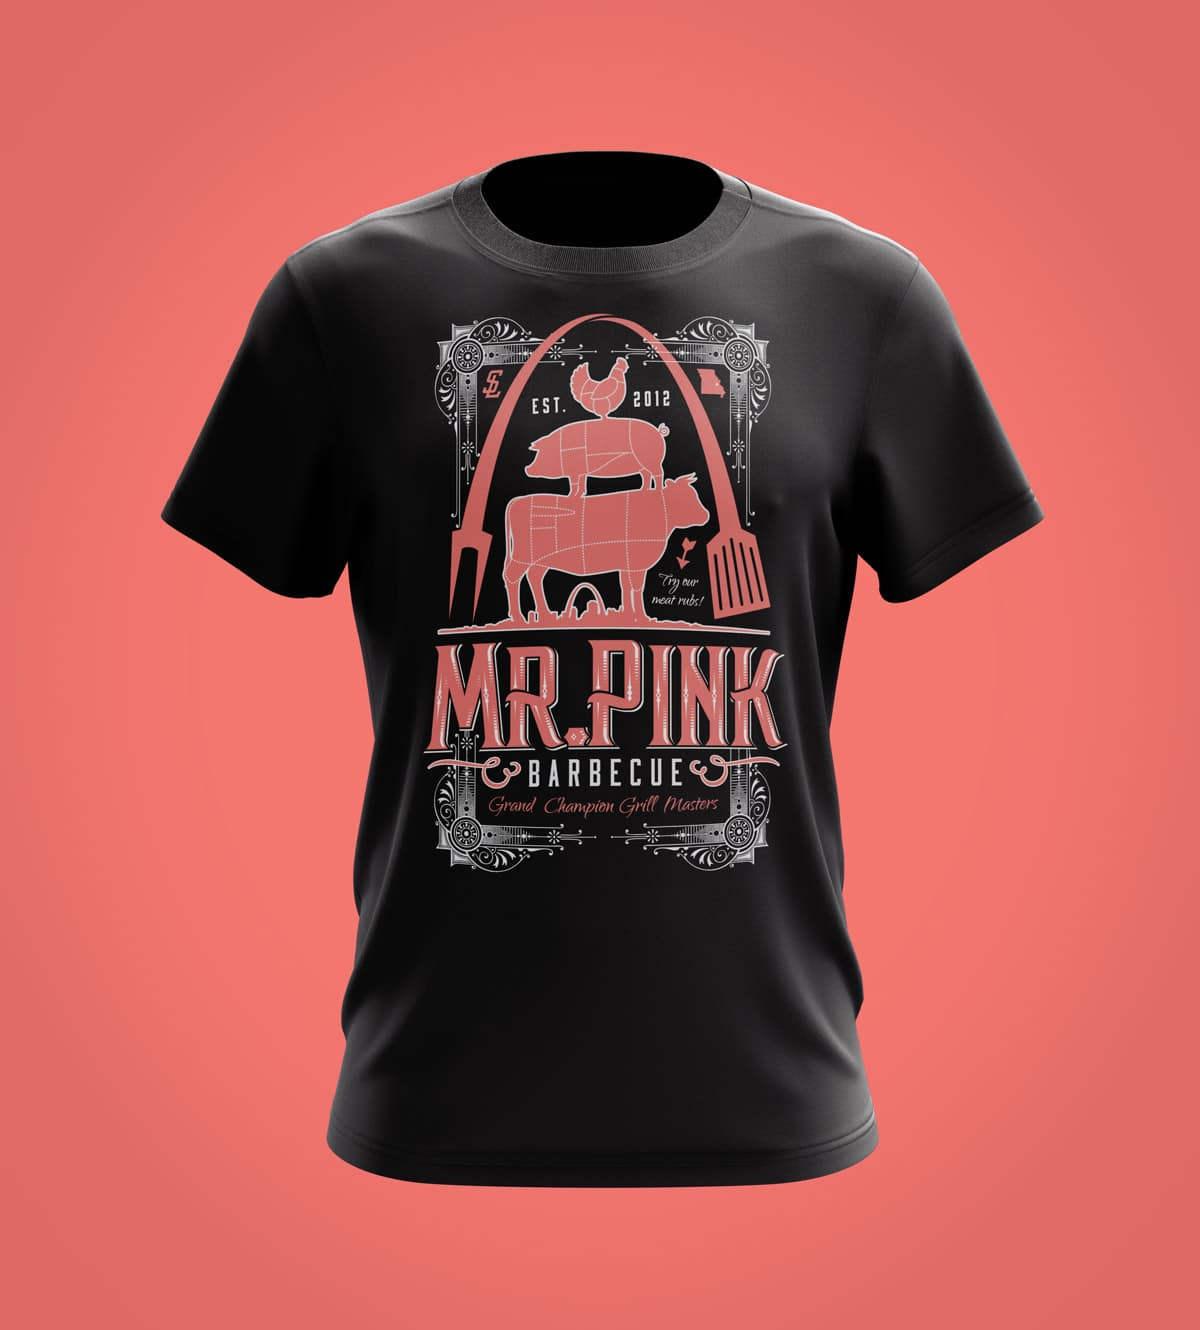 Mr. Pink Vintage T-shirt Design 2